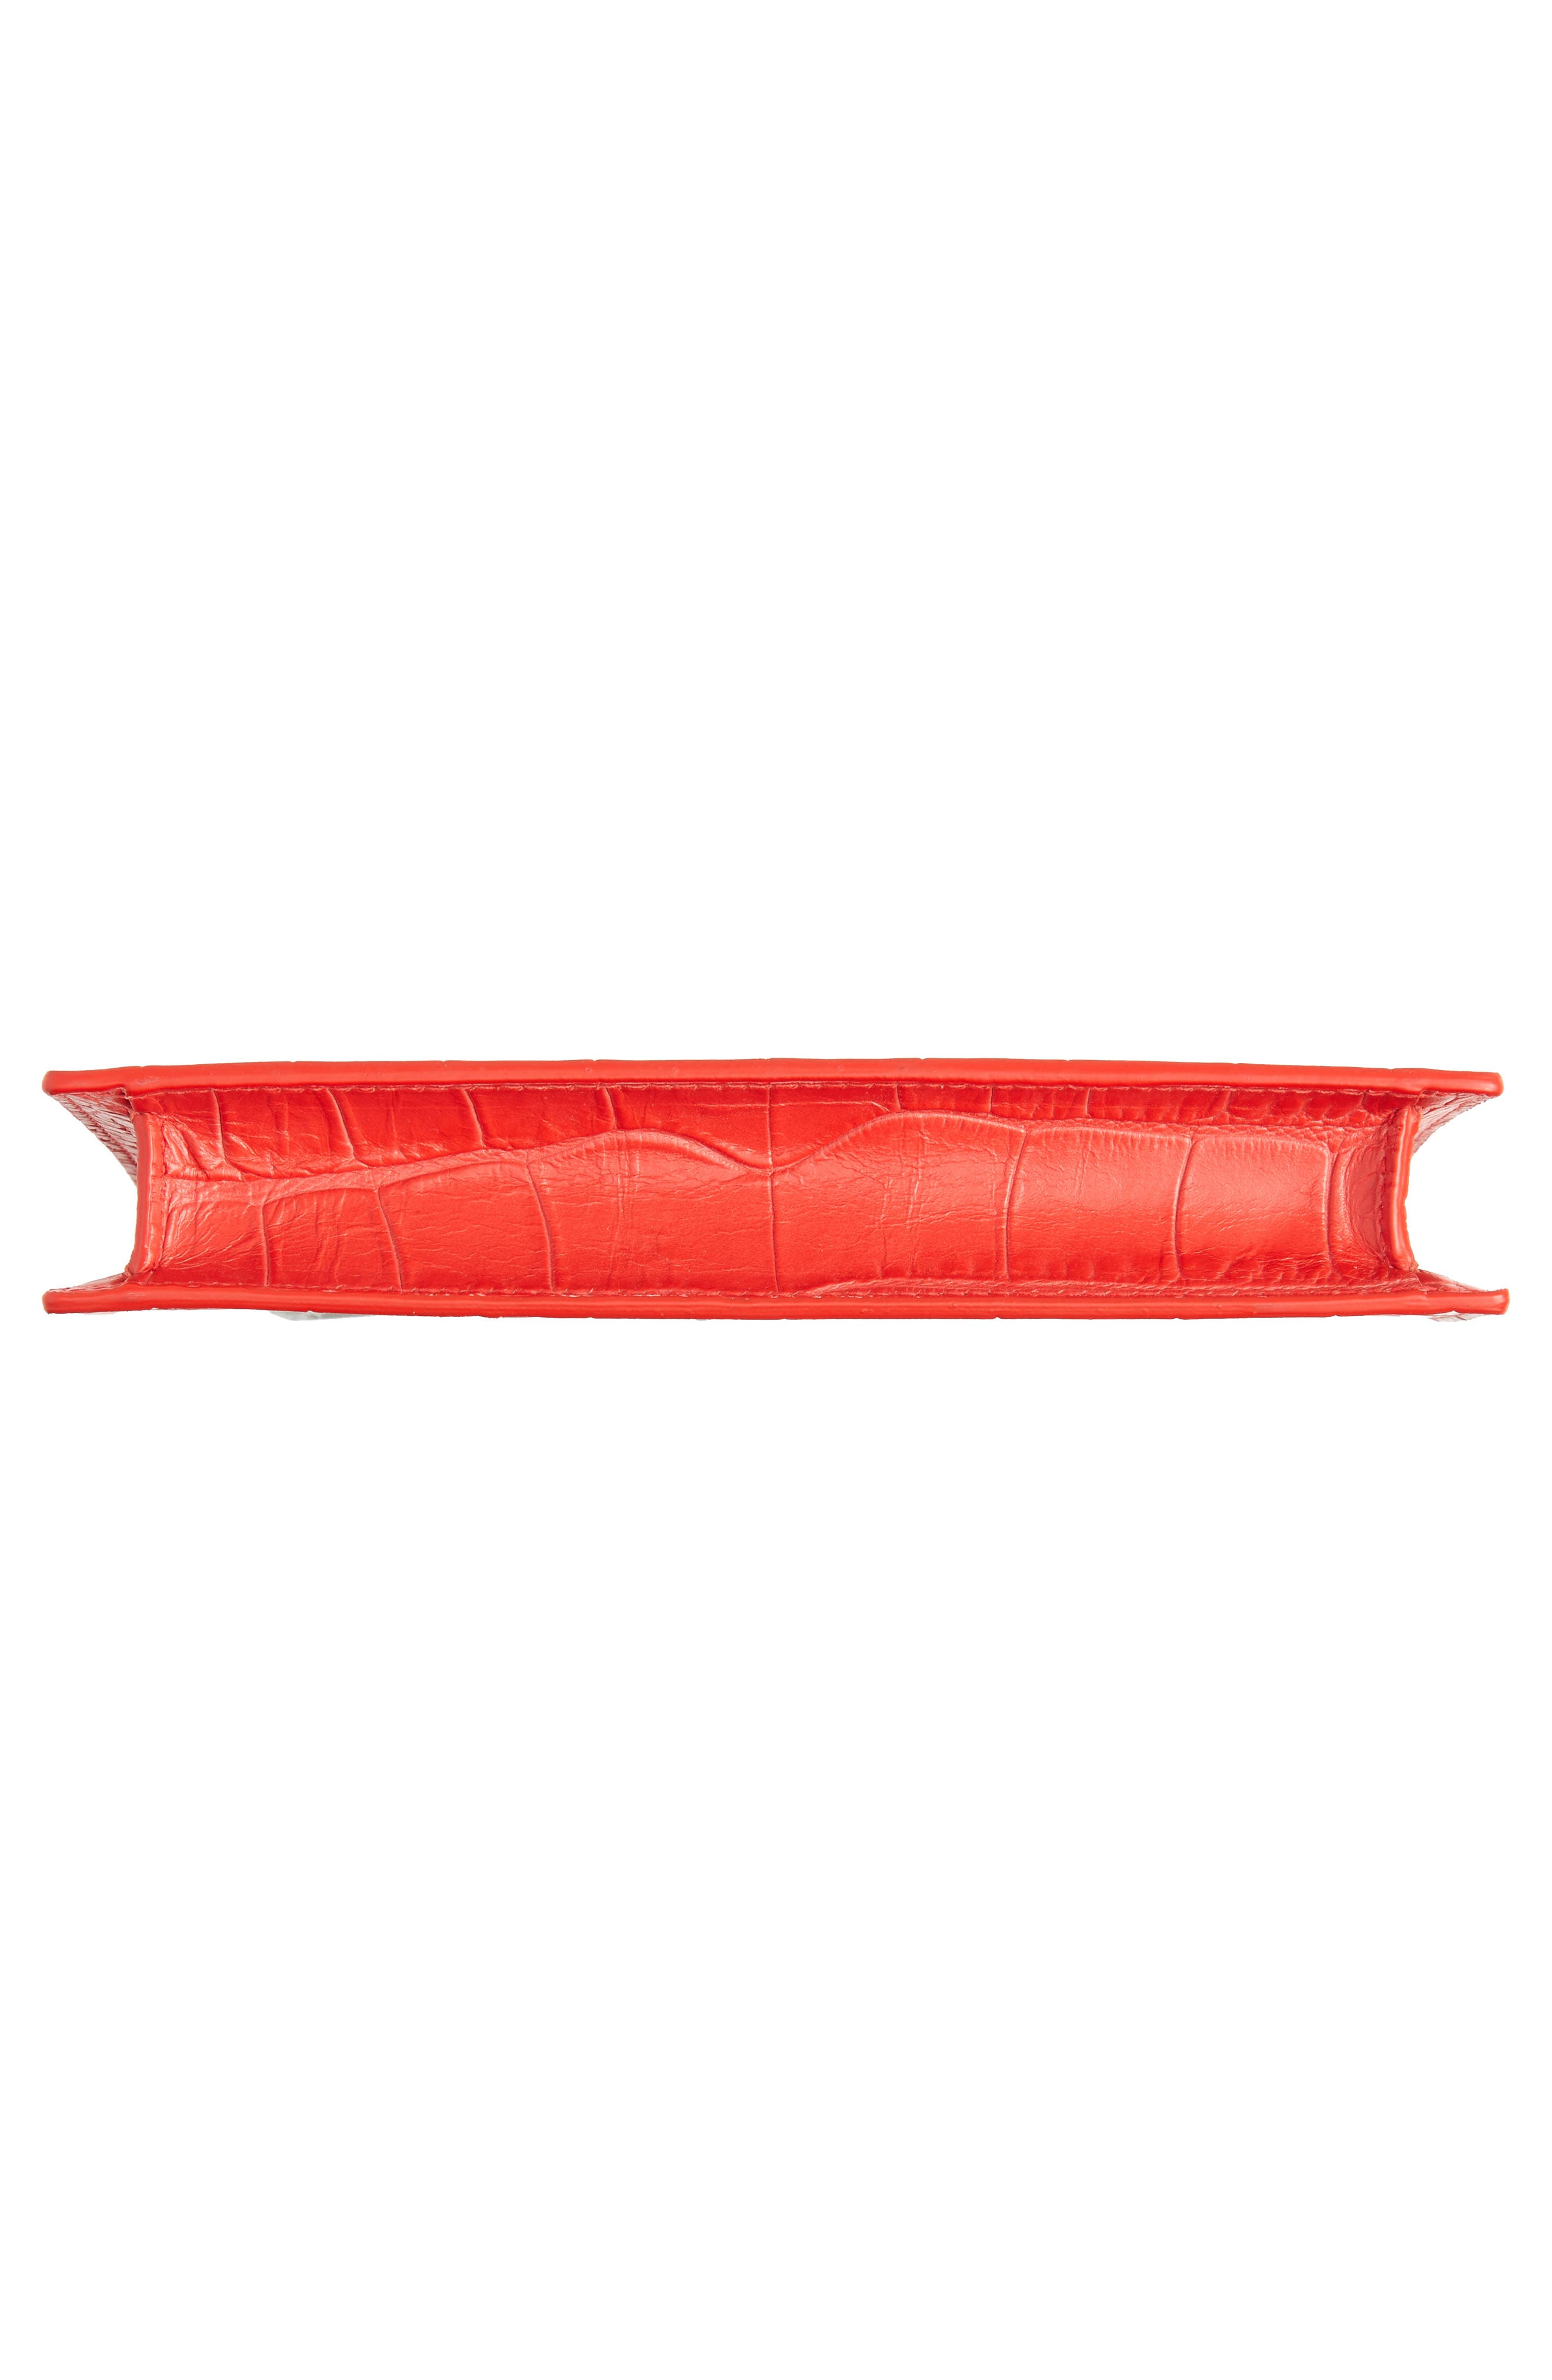 Croc Embossed Calfskin Leather Double Ring Clutch,                             Alternate thumbnail 6, color,                             LUST RED